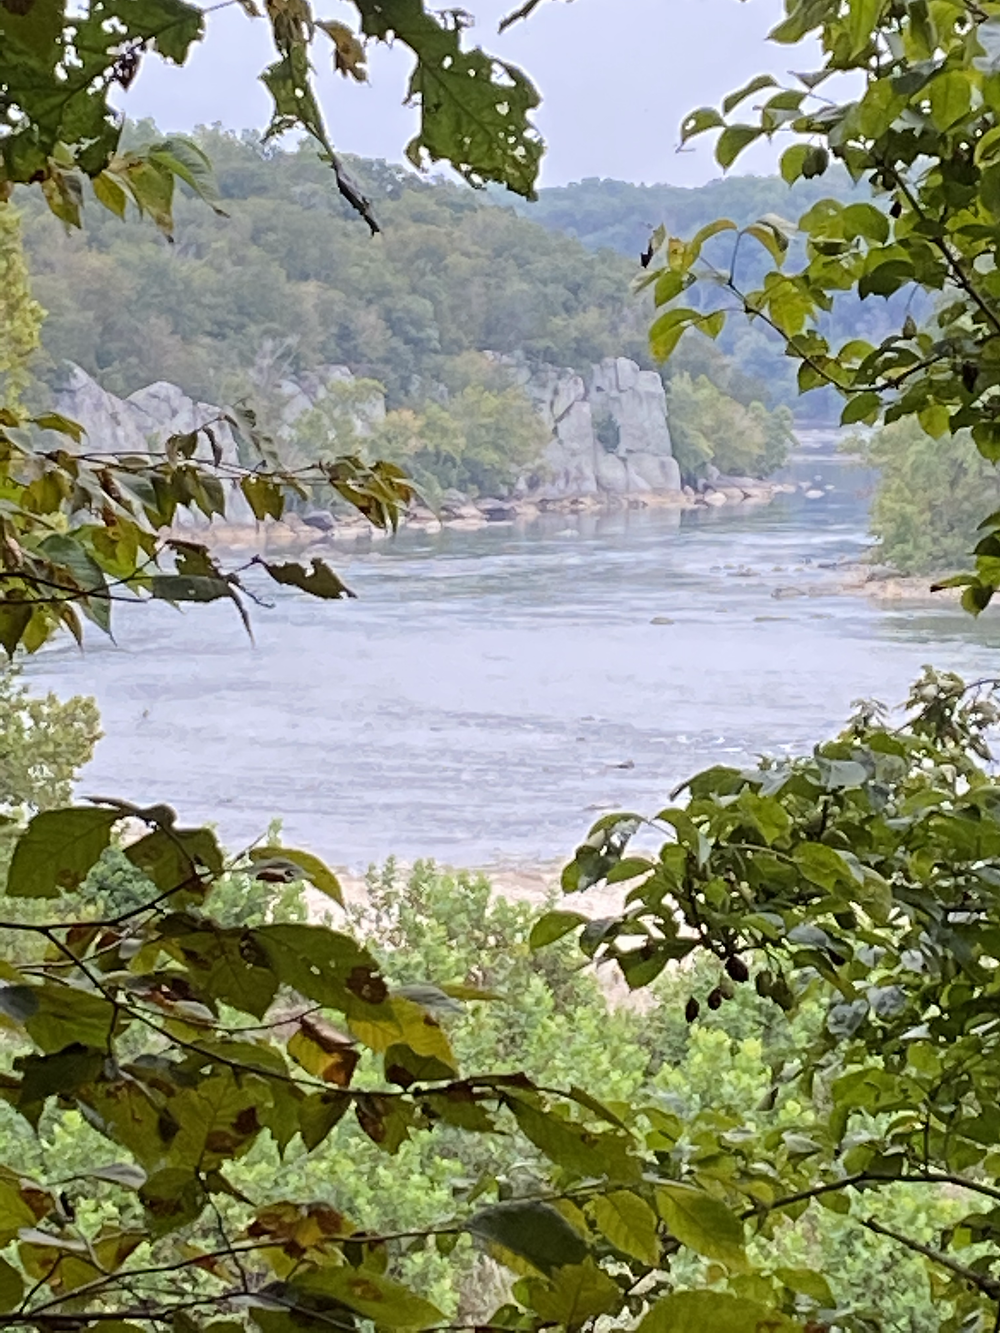 a view through some trees of a bend in the Potomac River from above on a cliff at Great Falls in Virginia